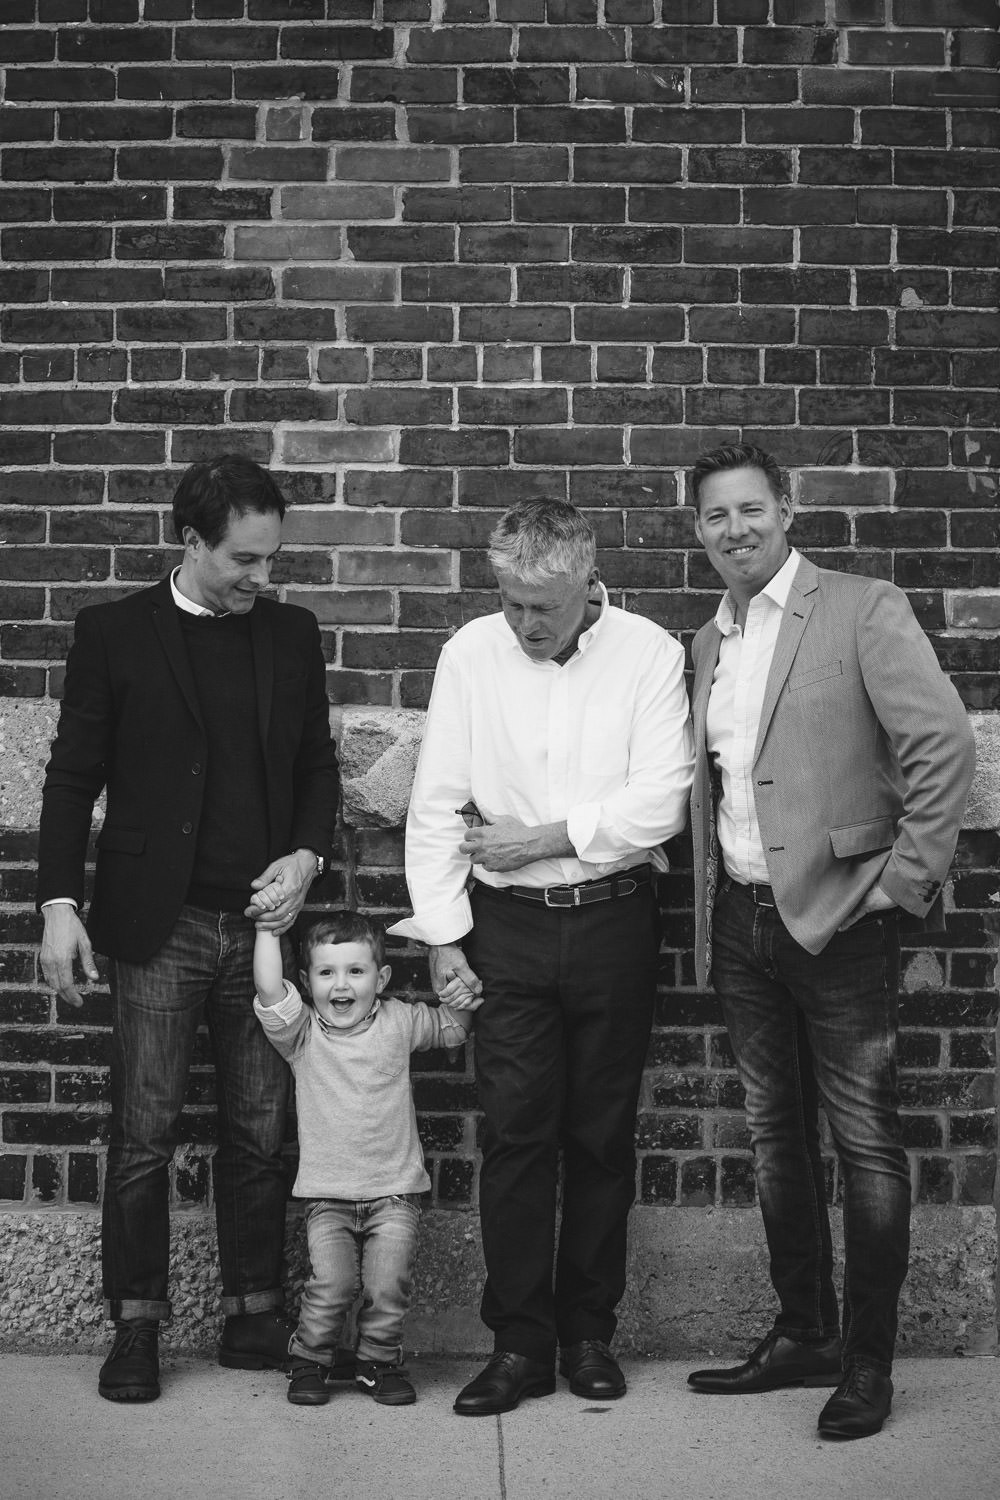 black and white image of 3 men and a little boy in front of brick wall